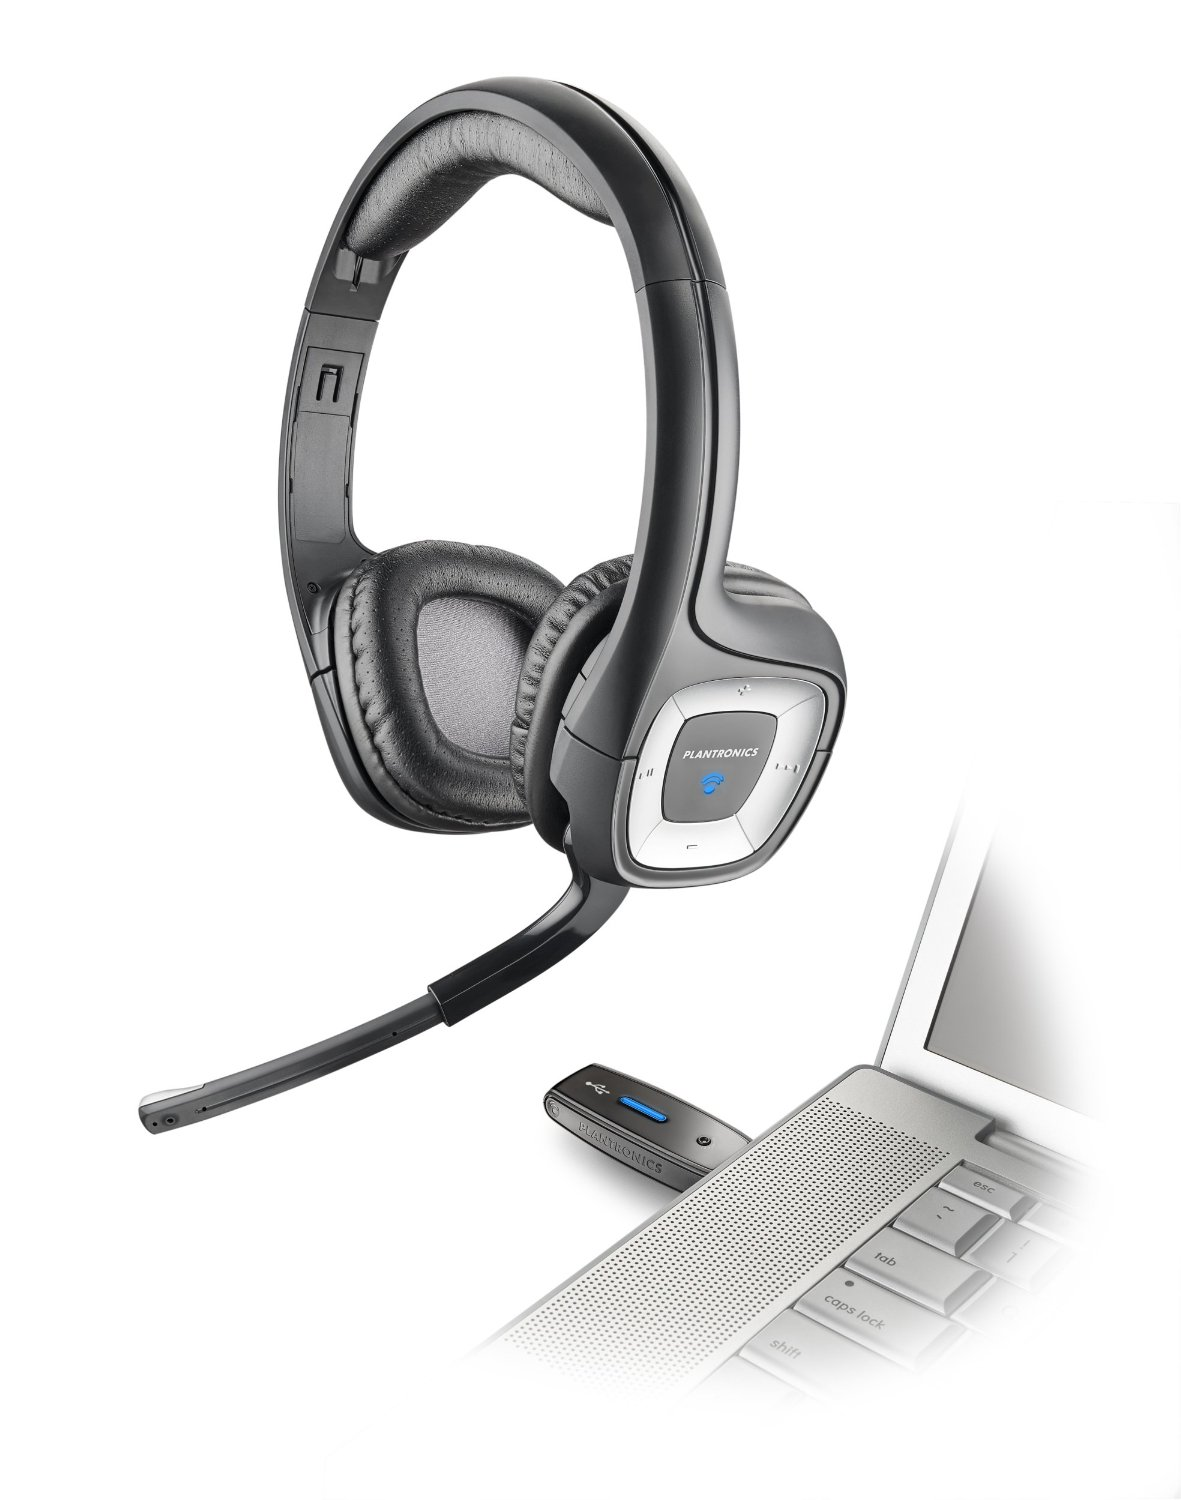 Image of Plantronics AUDIO 995 USB Multimedia Headset